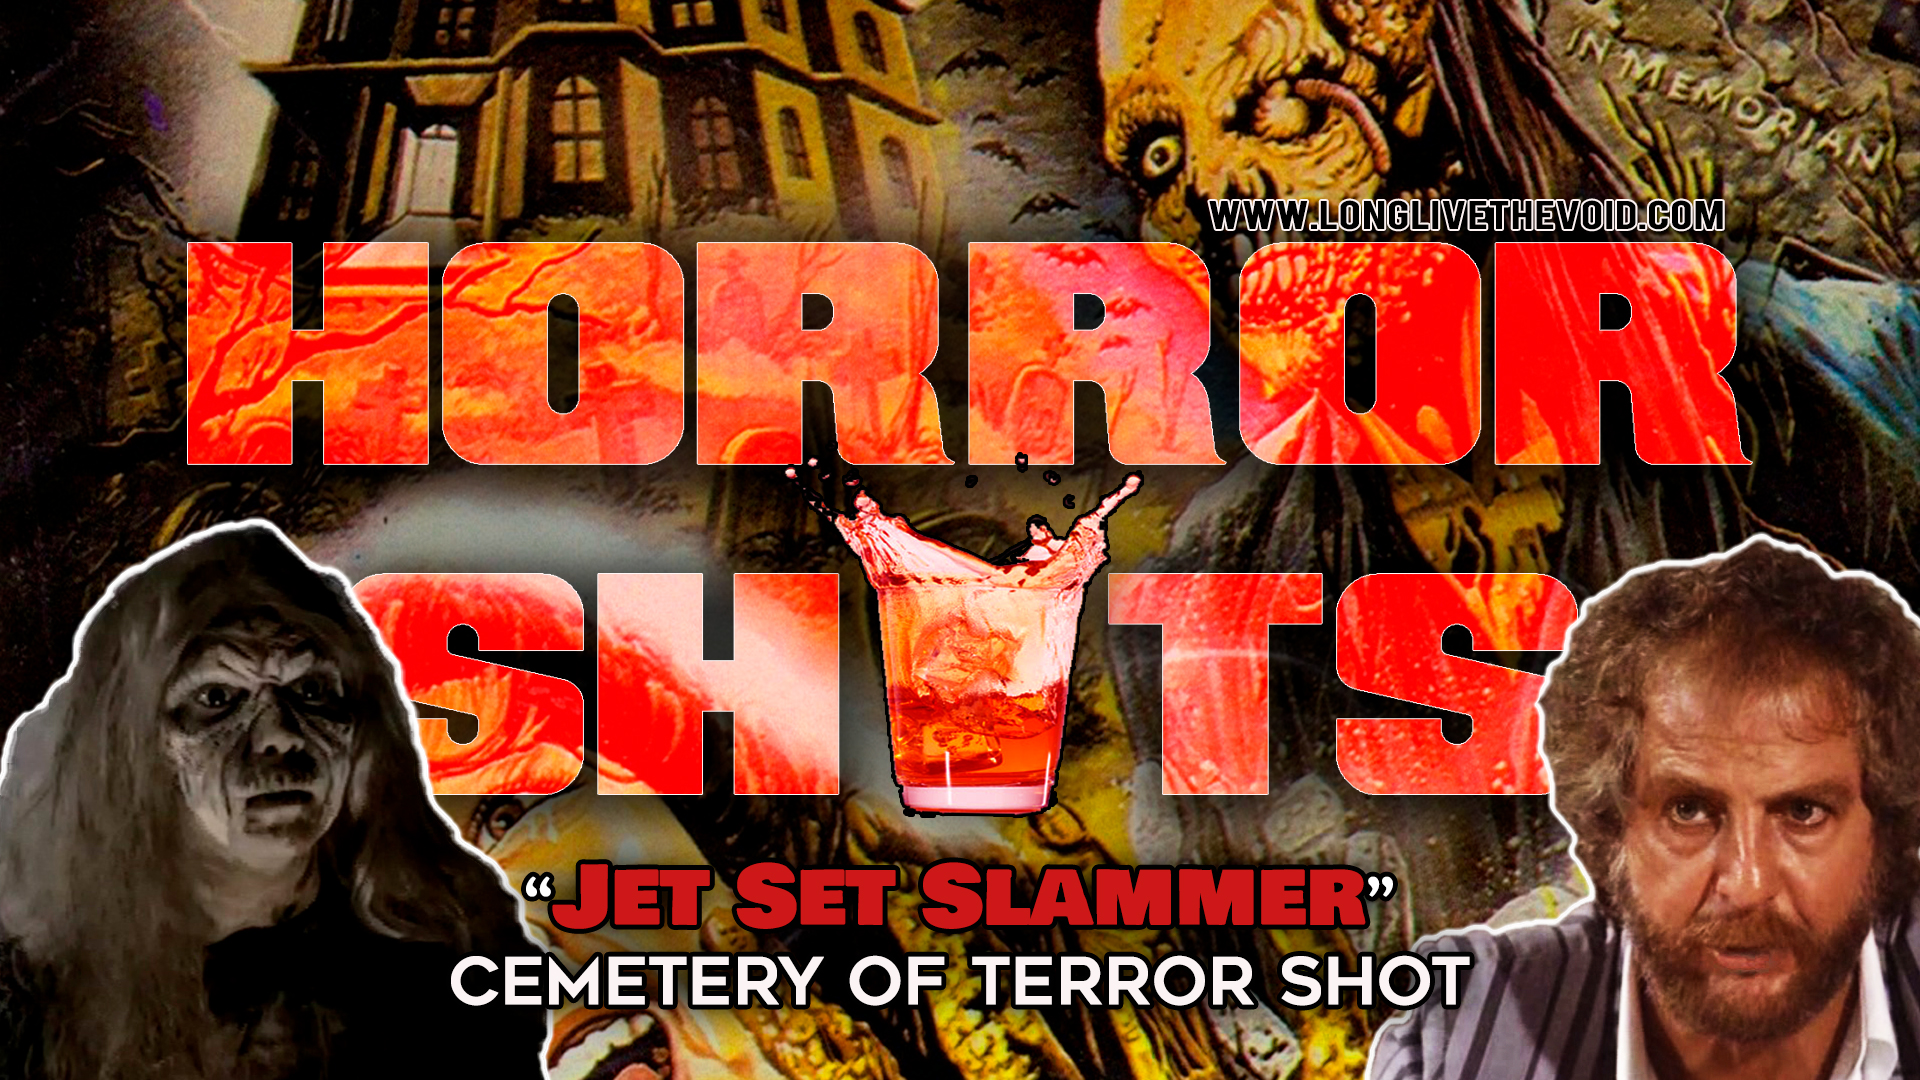 Jet-Set-Slammer-Cemetery-Of-Terror-Shot.jpg